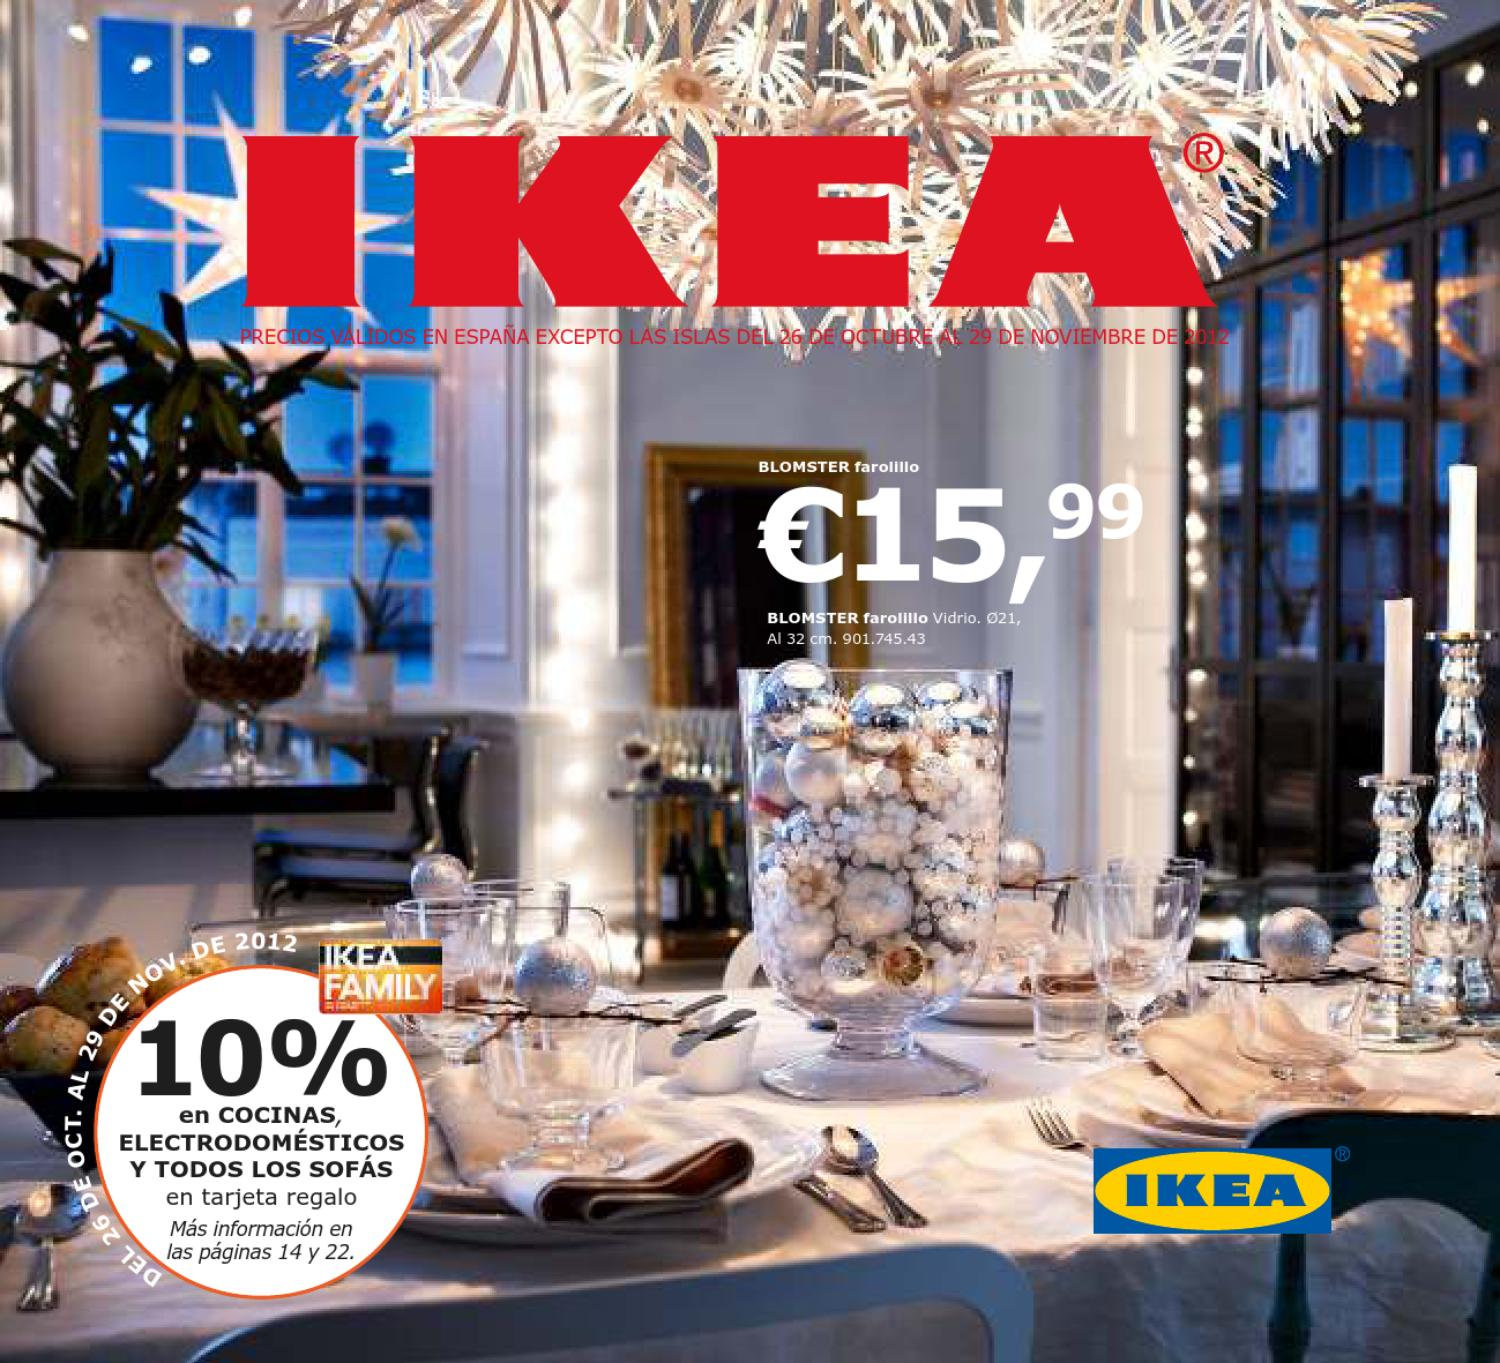 Catalogo ikea decoracion de navidad 2012 2013 by for Jaulas decoracion ikea